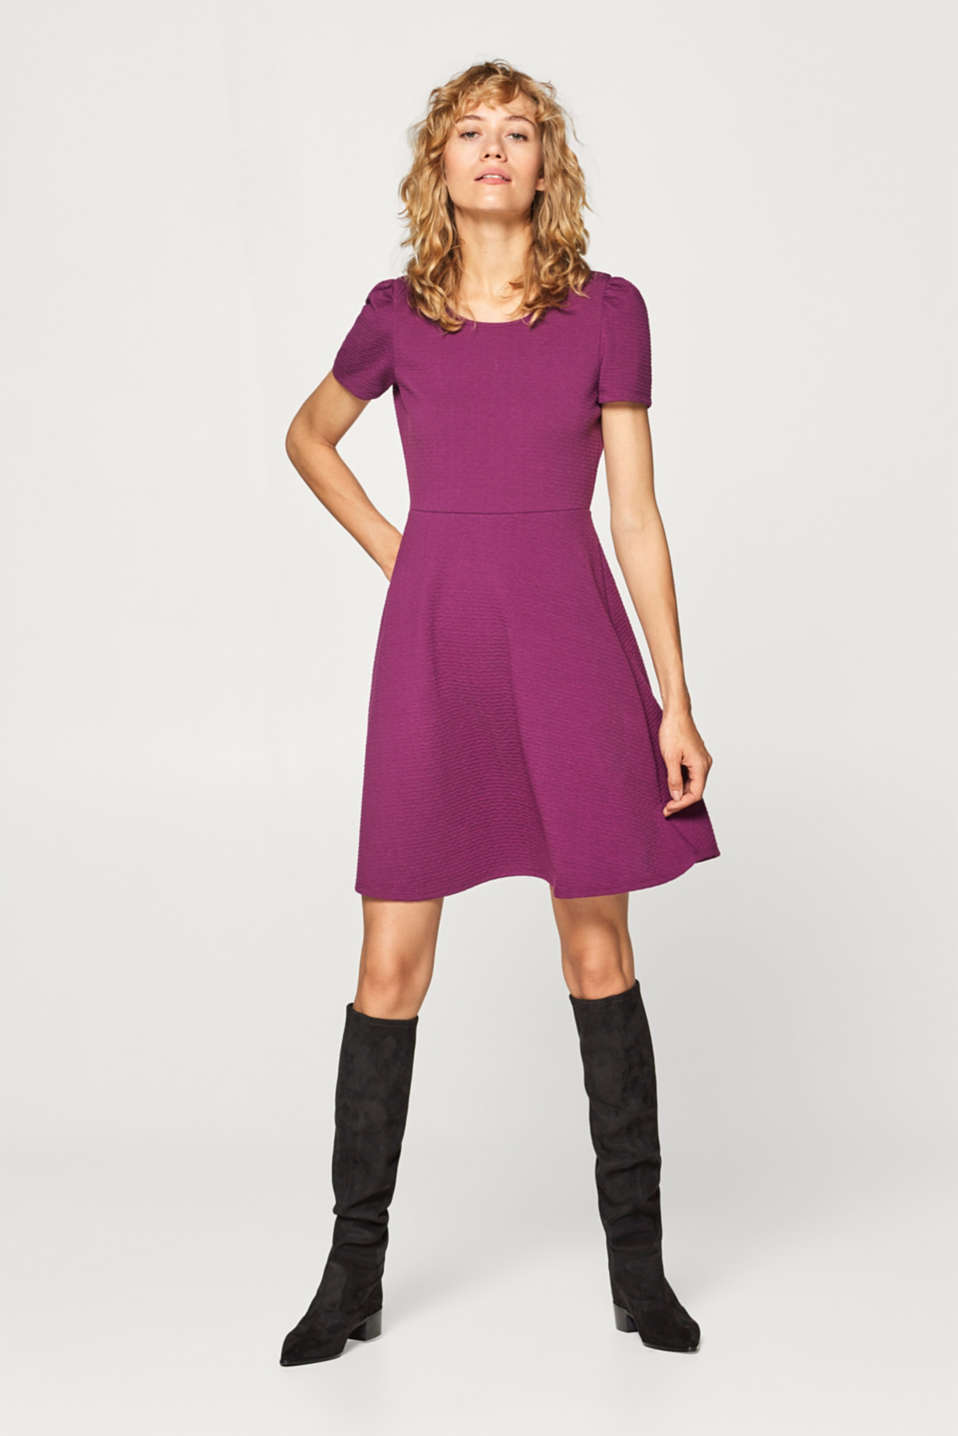 Esprit - Stretch jersey dress with a jacquard pattern